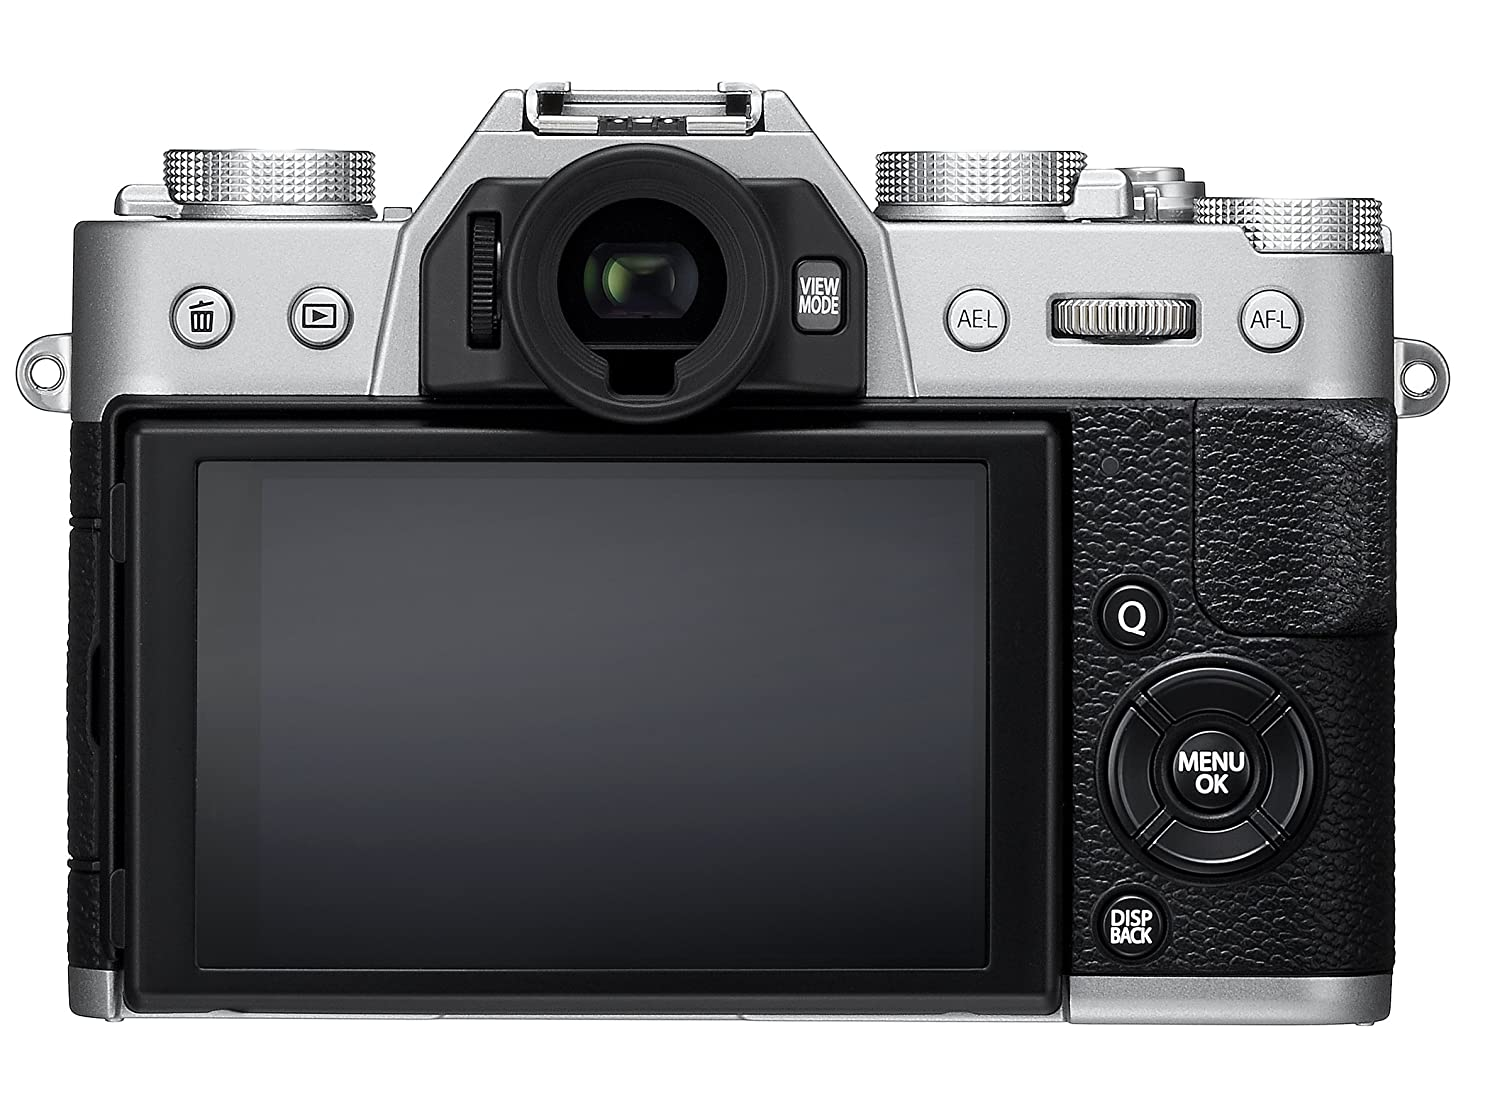 Fujifilm X T20 Mirrorless Digital Camera W Xc16 50mmf3 With 16 50mm Silver 50 230mm Instax Share Sp 2 50mmf35 56 Oisii Lens Photo